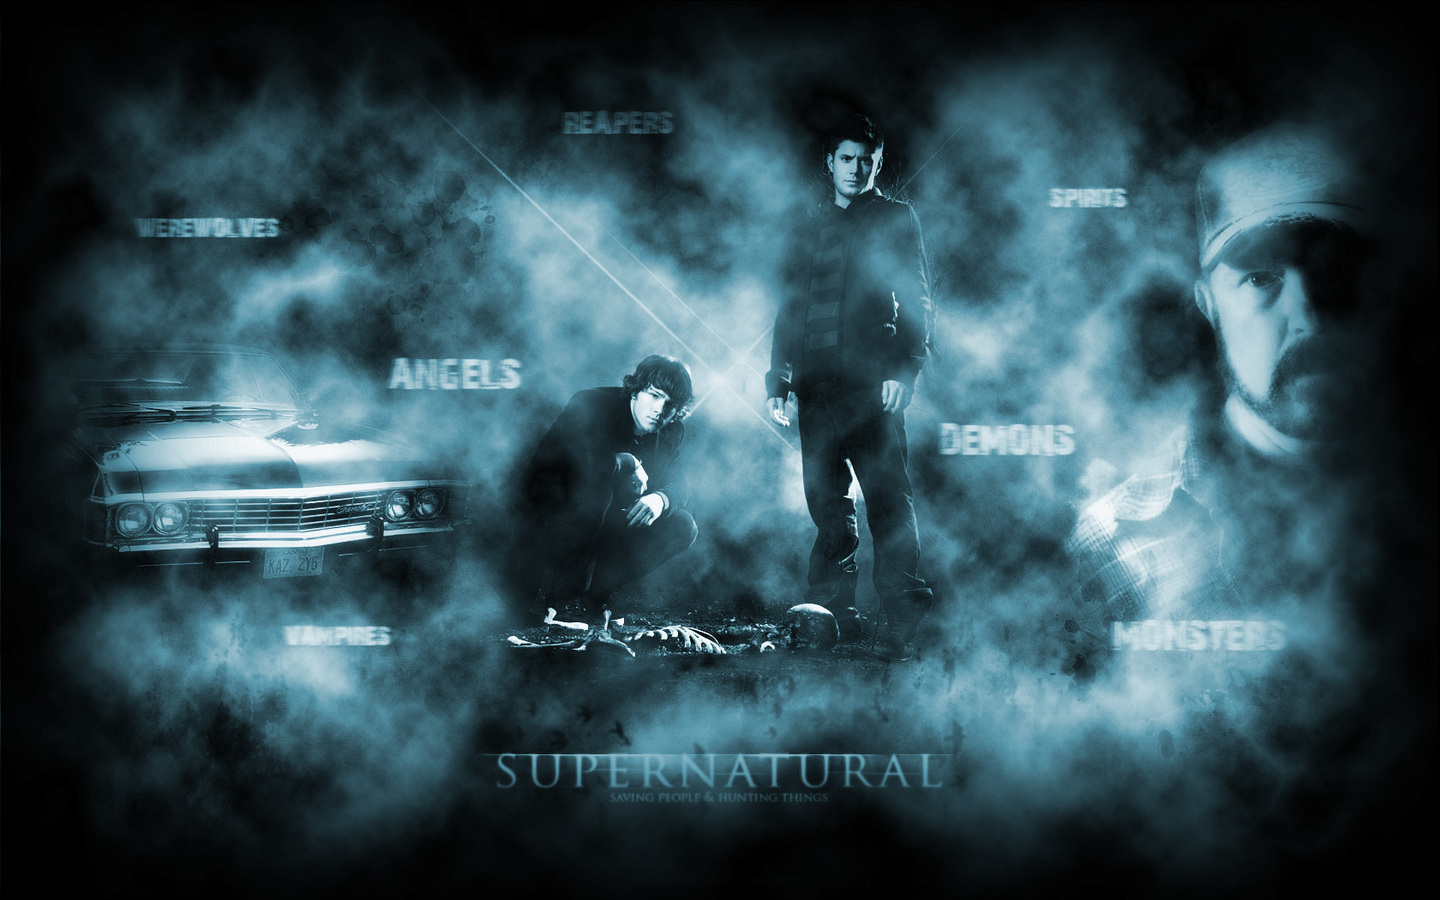 Wonderful   Wallpaper Home Screen Supernatural - Supernatural-Dark-Widescreen-Wallpaper-supernatural-5033824-1440-900  Photograph_33308.jpg